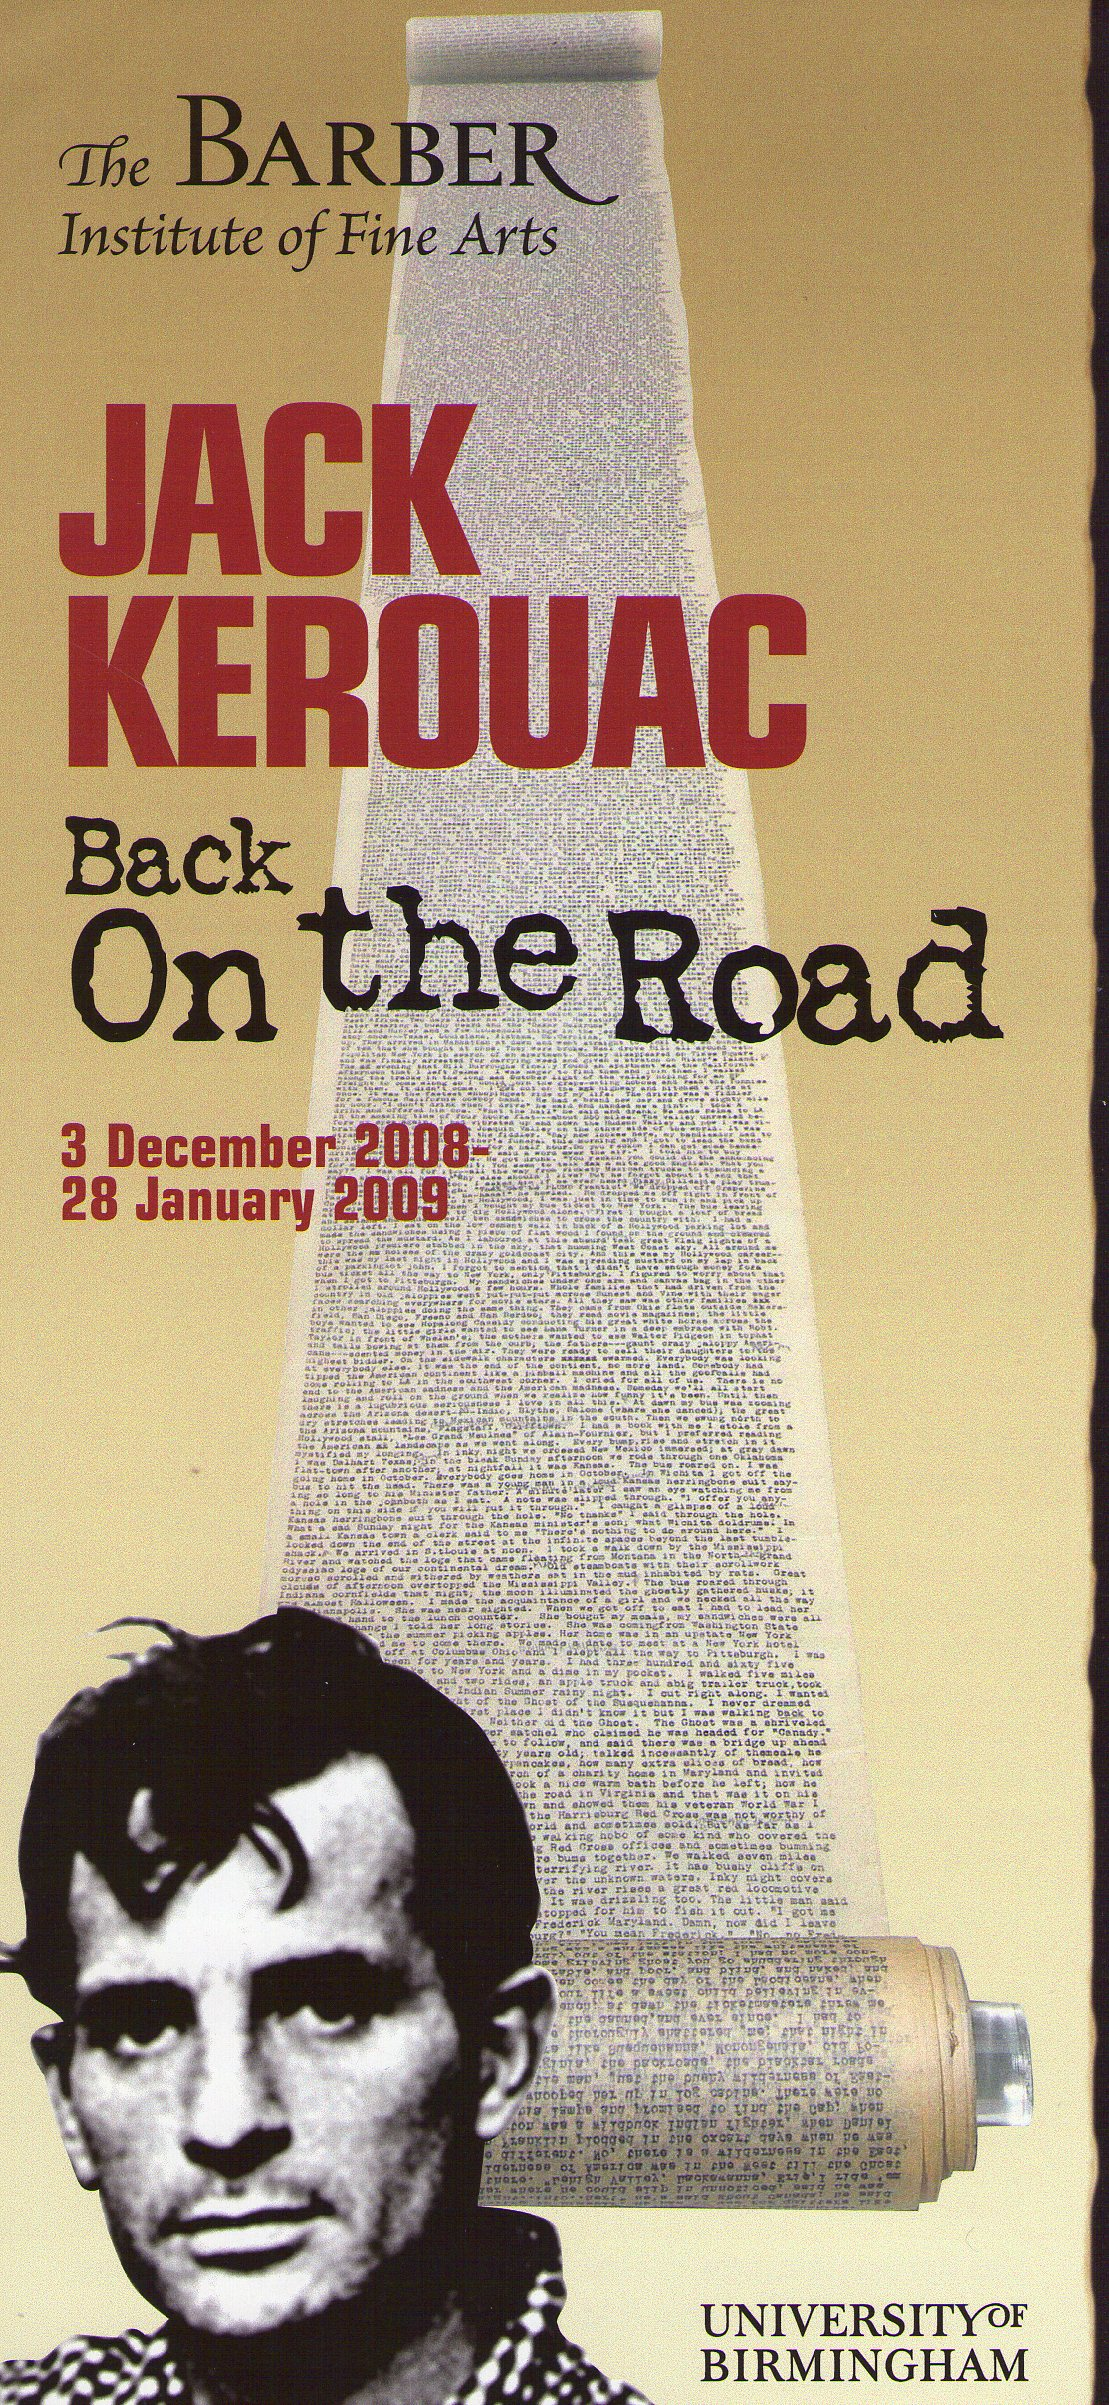 "on the road jack kerouac essay questions On the road by jack kerouac ""on the road"" by jack kerouac is largely autobiographical work attributed to the genre of stems of consciousness creation the novel is based on the author's spontaneous trips with his friends across mid-century america."